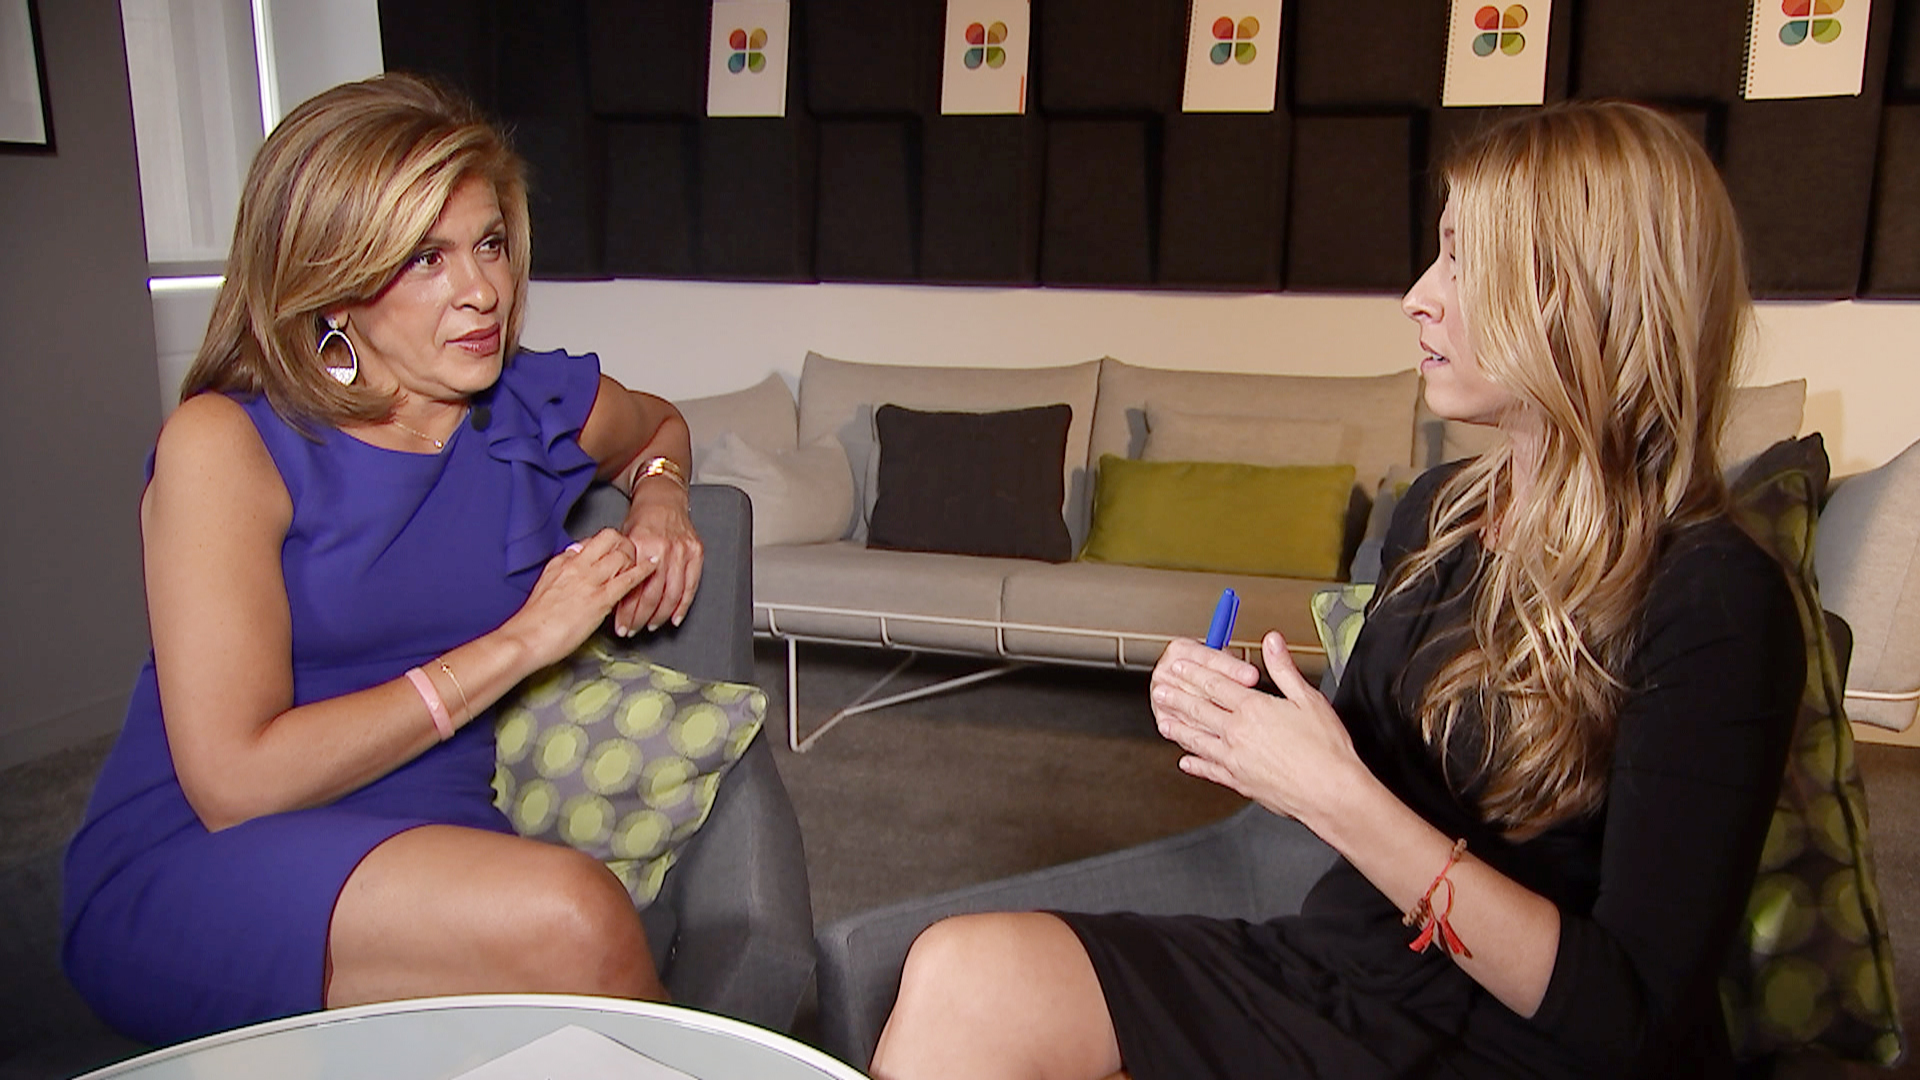 #startTODAY with Hoda: 30-day plan to calm the mind and control your life